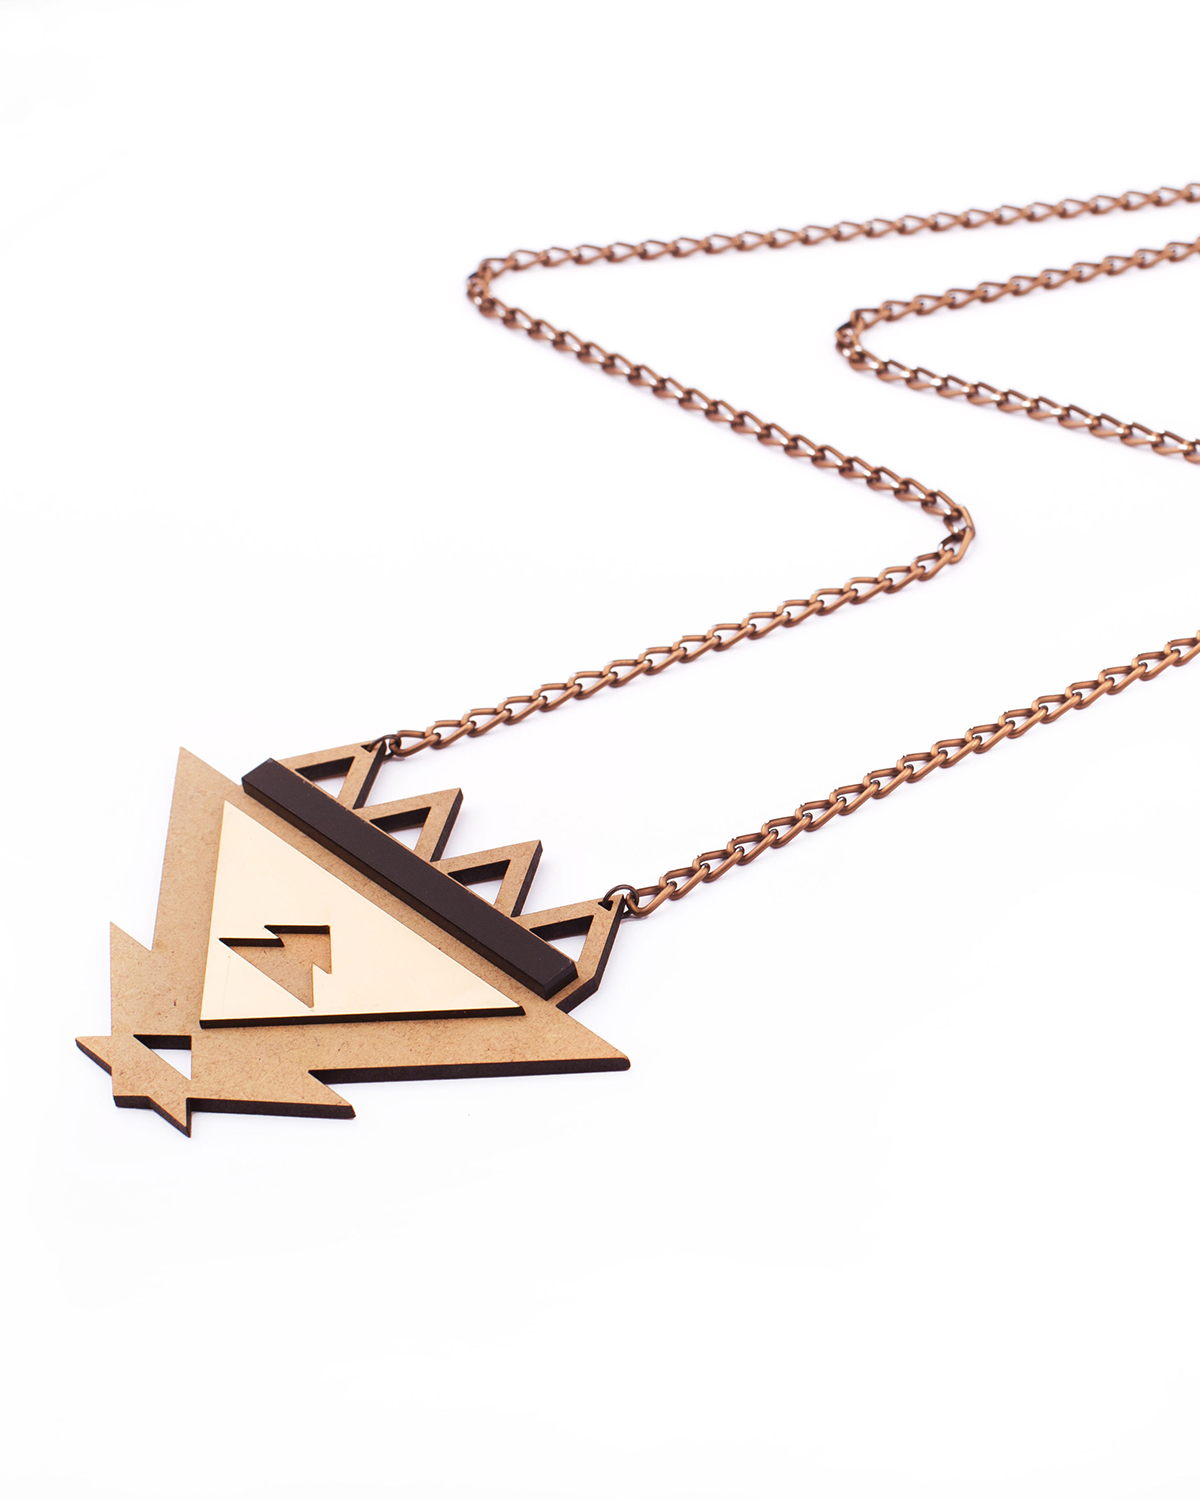 Ethnotize necklace | Lasercut jewellery | Rename jewelry | Made in Belgrade